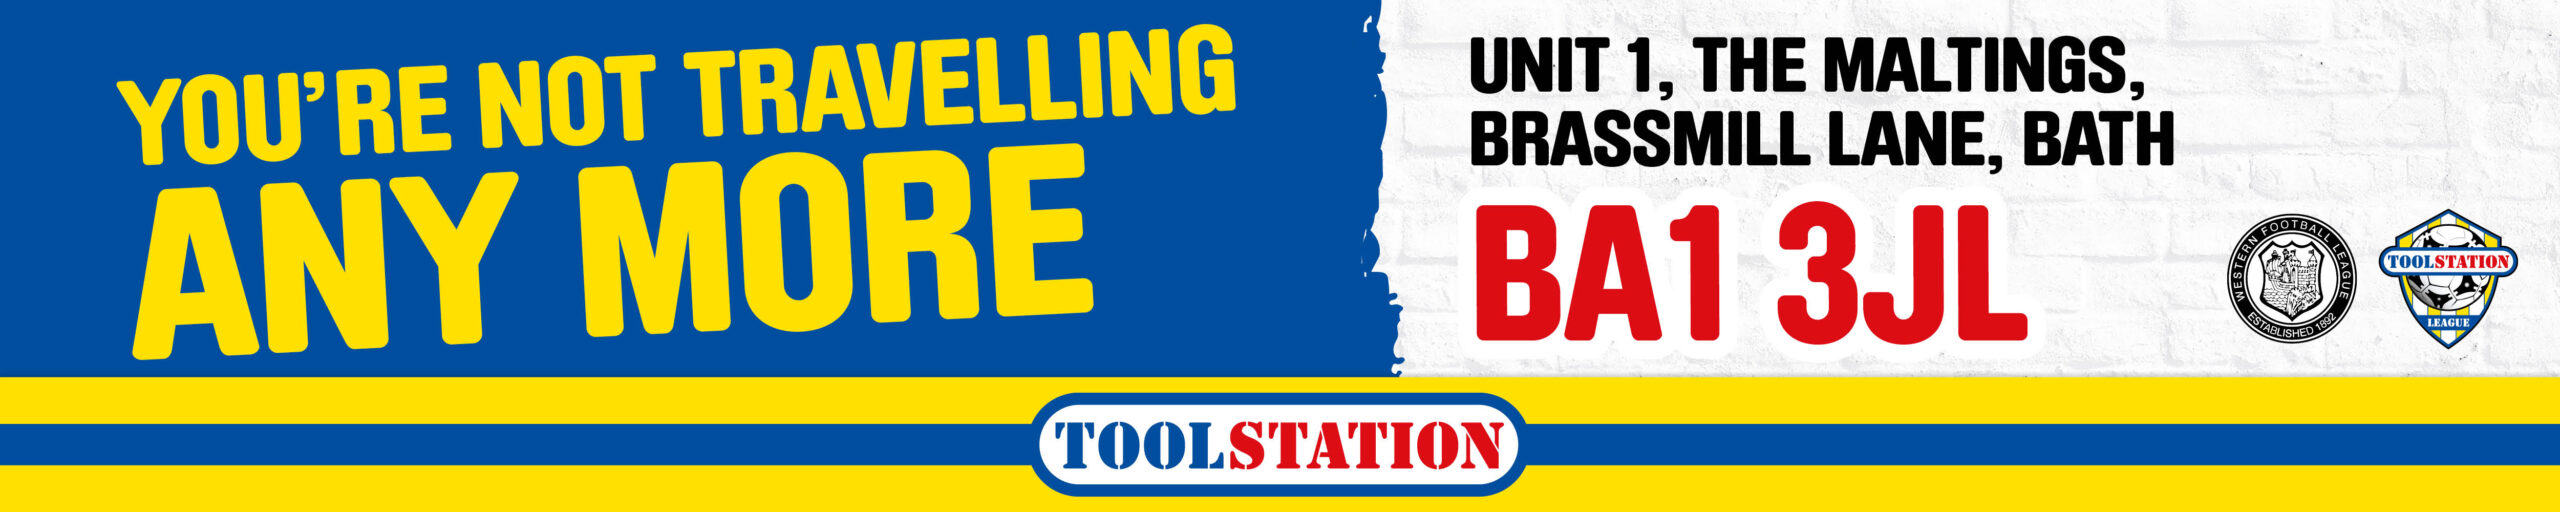 Bath Toolstation